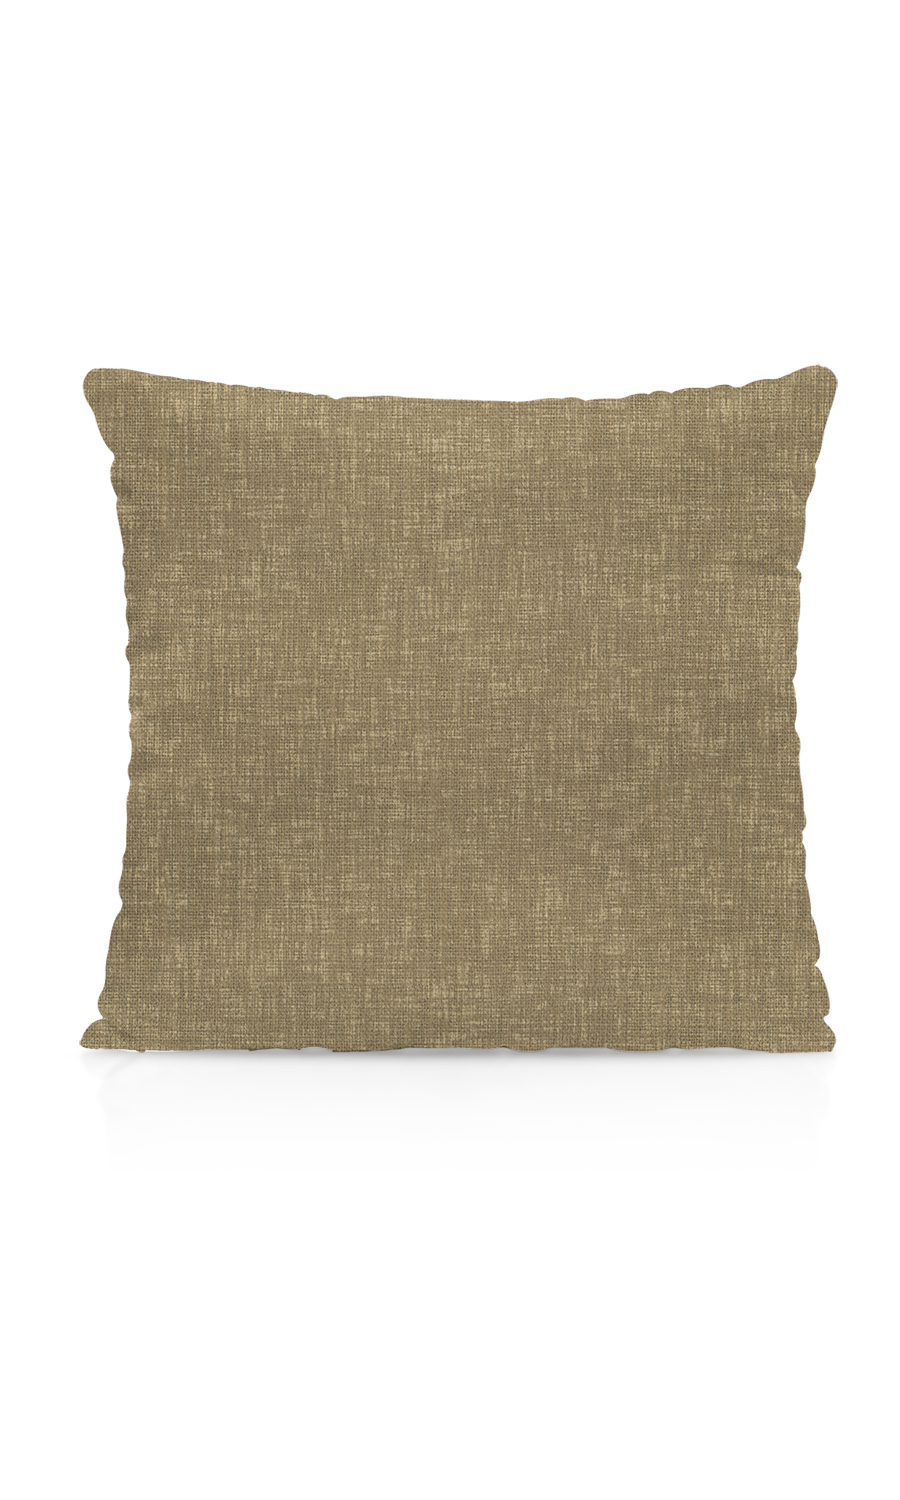 Affordable Cushion Cover